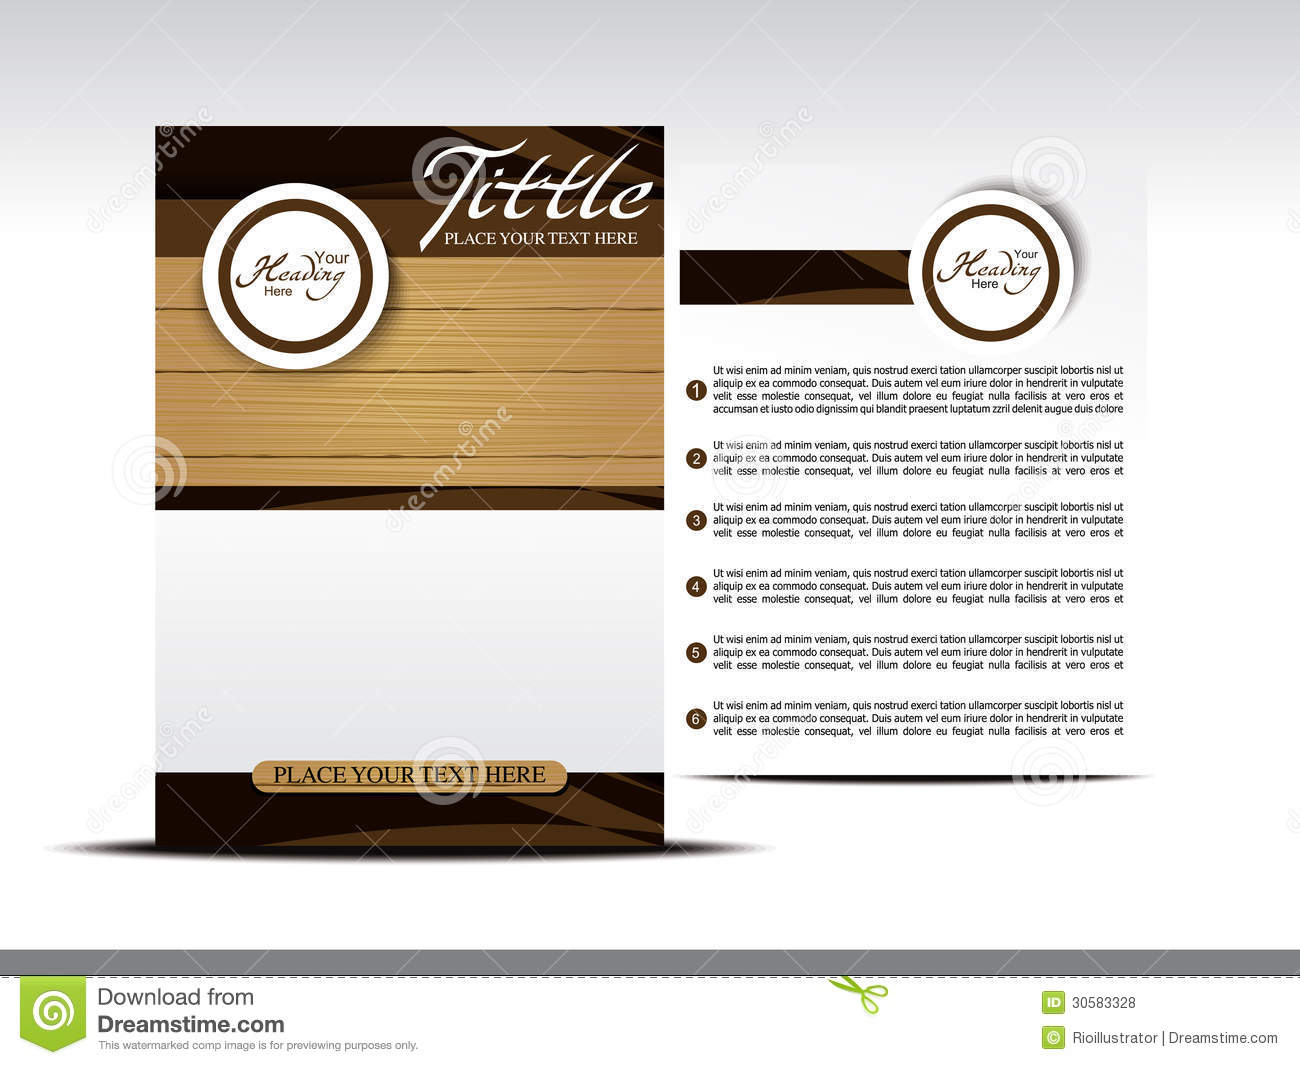 ... Design With Wood Effect Royalty Free Stock Photos - Image: 30583328